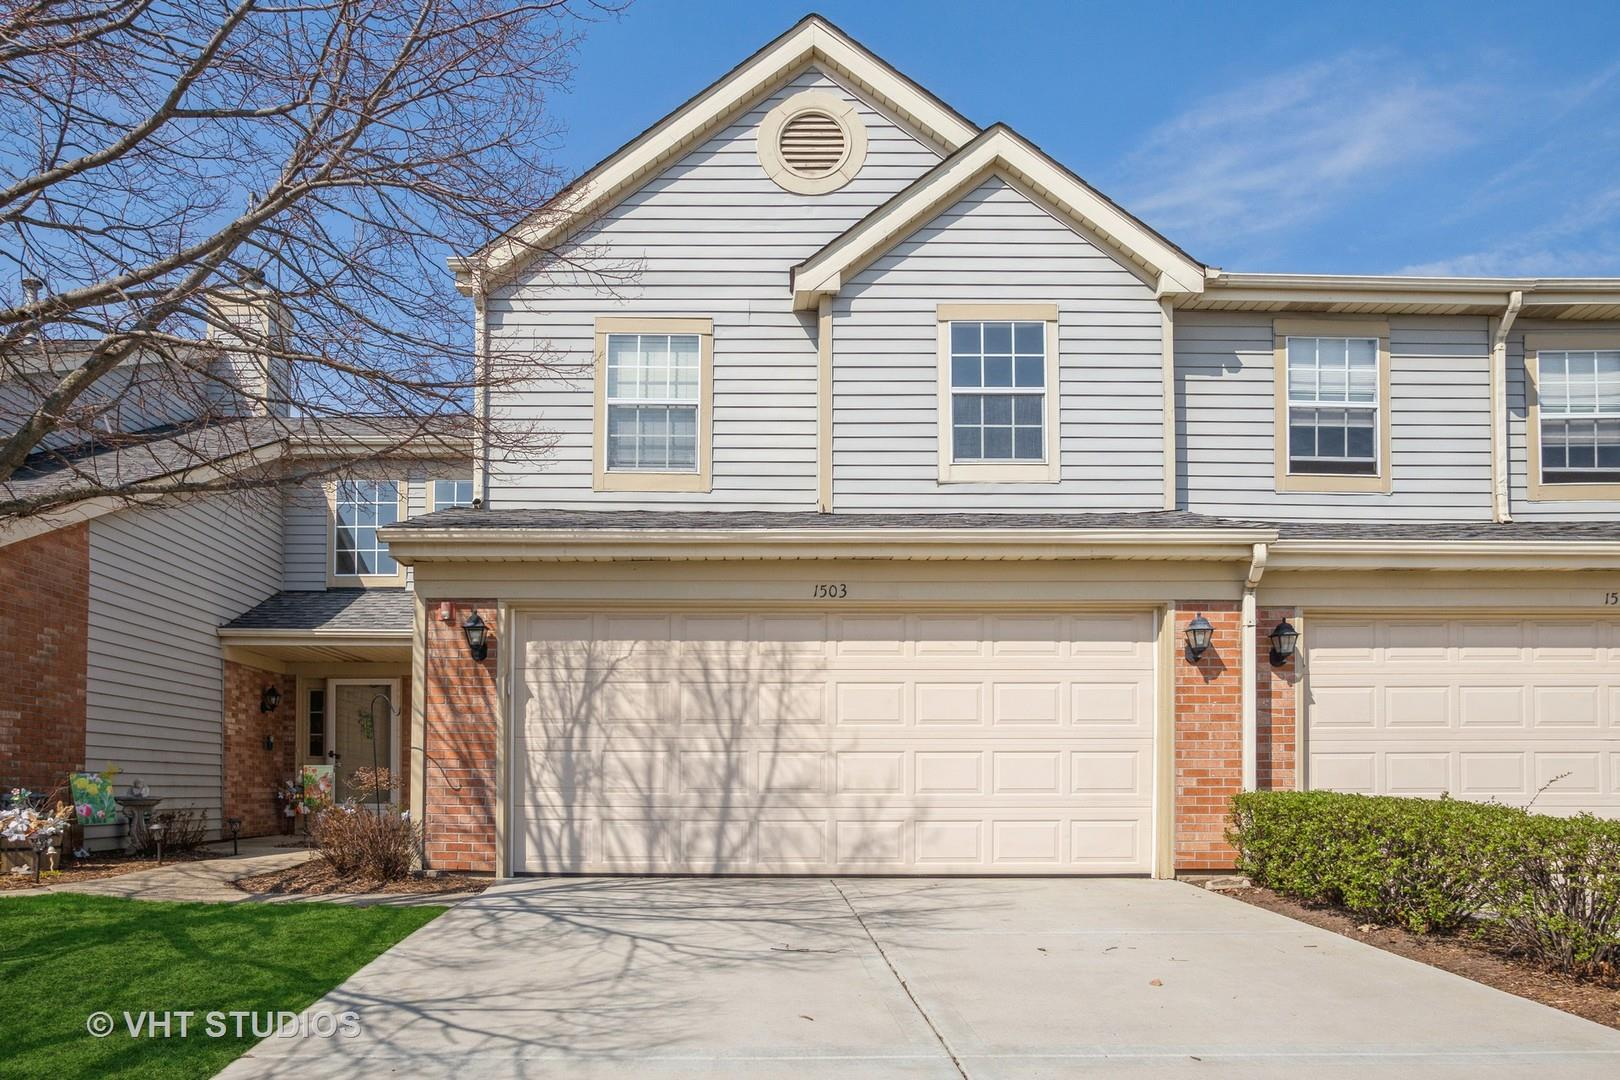 1503 Club Drive, Glendale Heights, IL 60139 - #: 11046401